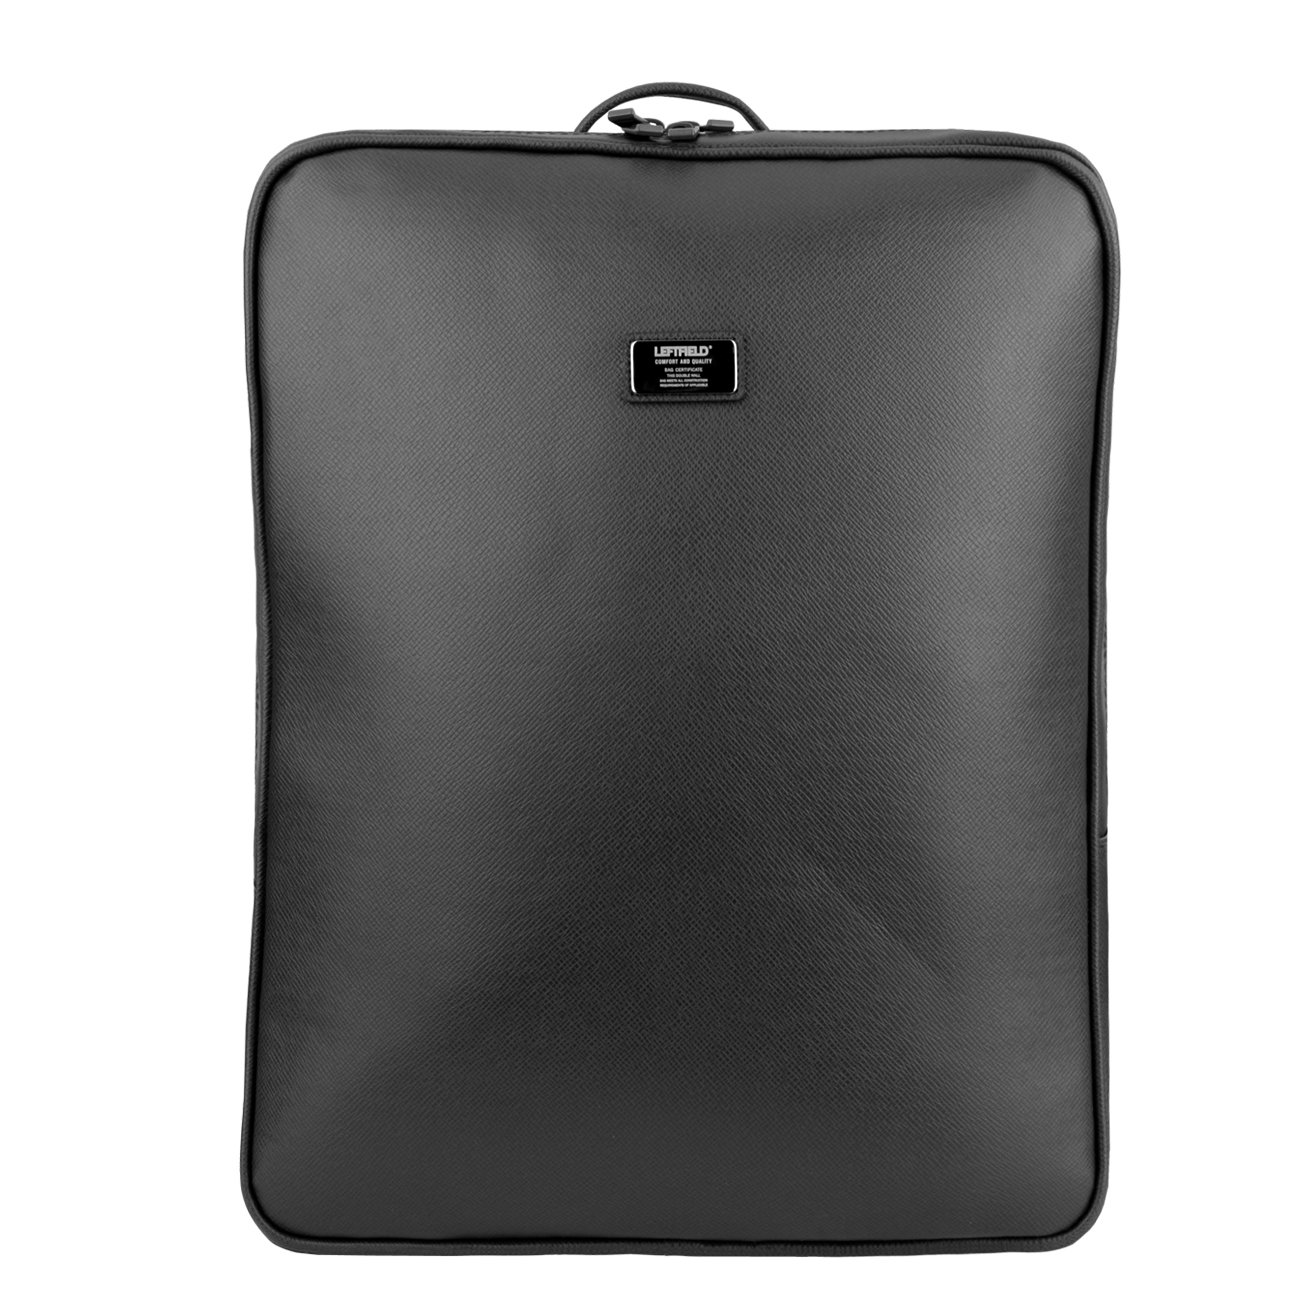 CHAQLIN Sport Designer Travel Luggage Protector Covers for 18-30 Inch Case